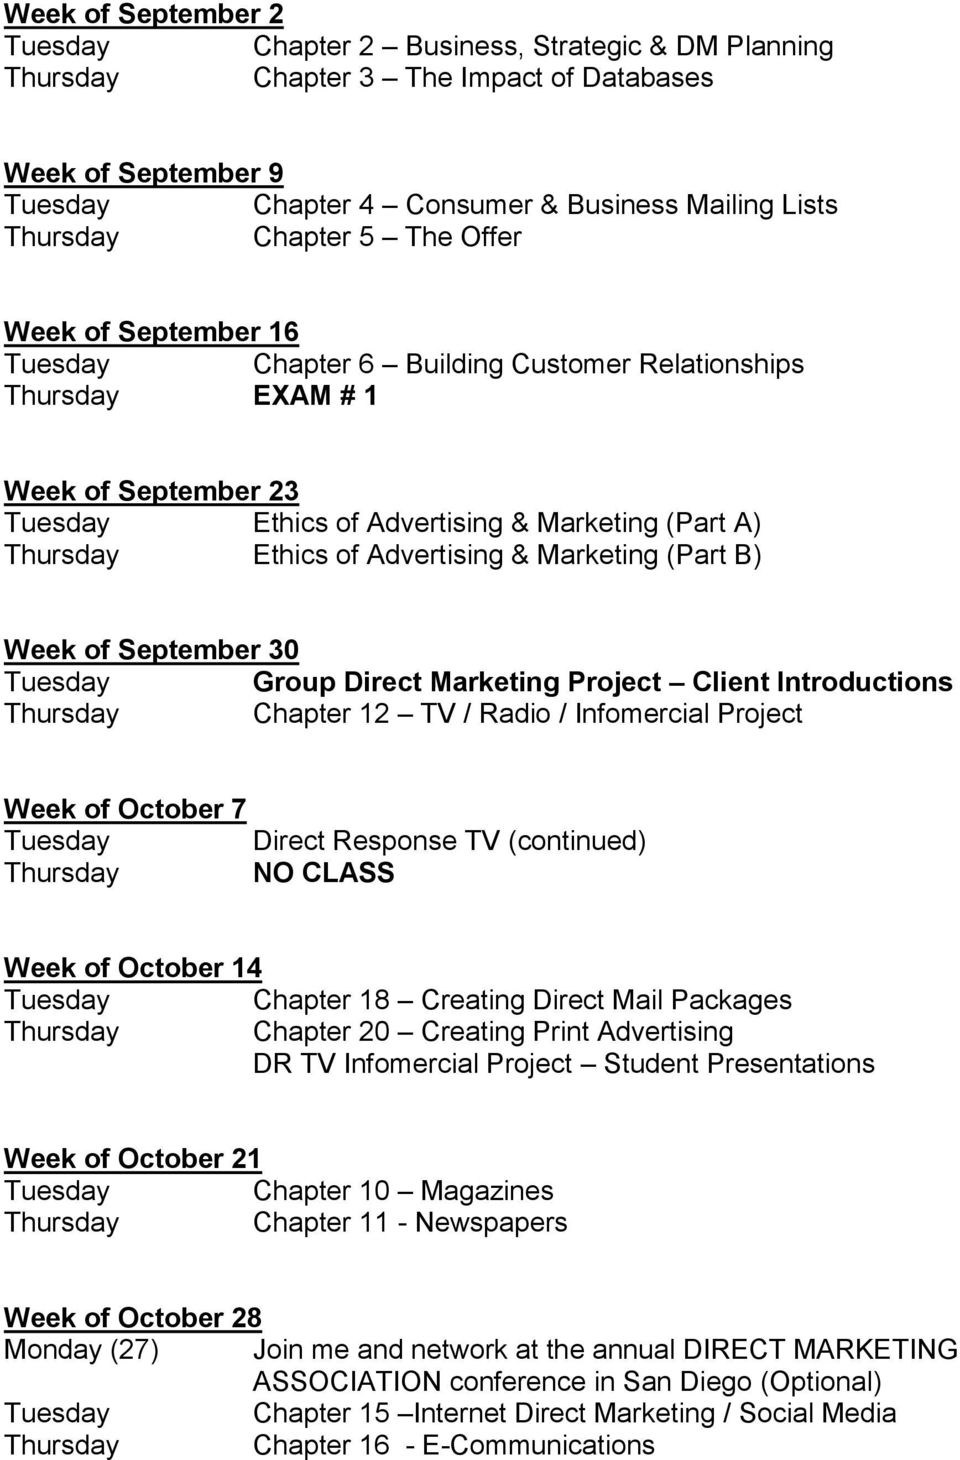 Week of September 30 Group Direct Marketing Project Client Introductions Thursday Chapter 12 TV / Radio / Infomercial Project Week of October 7 Direct Response TV (continued) Thursday NO CLASS Week